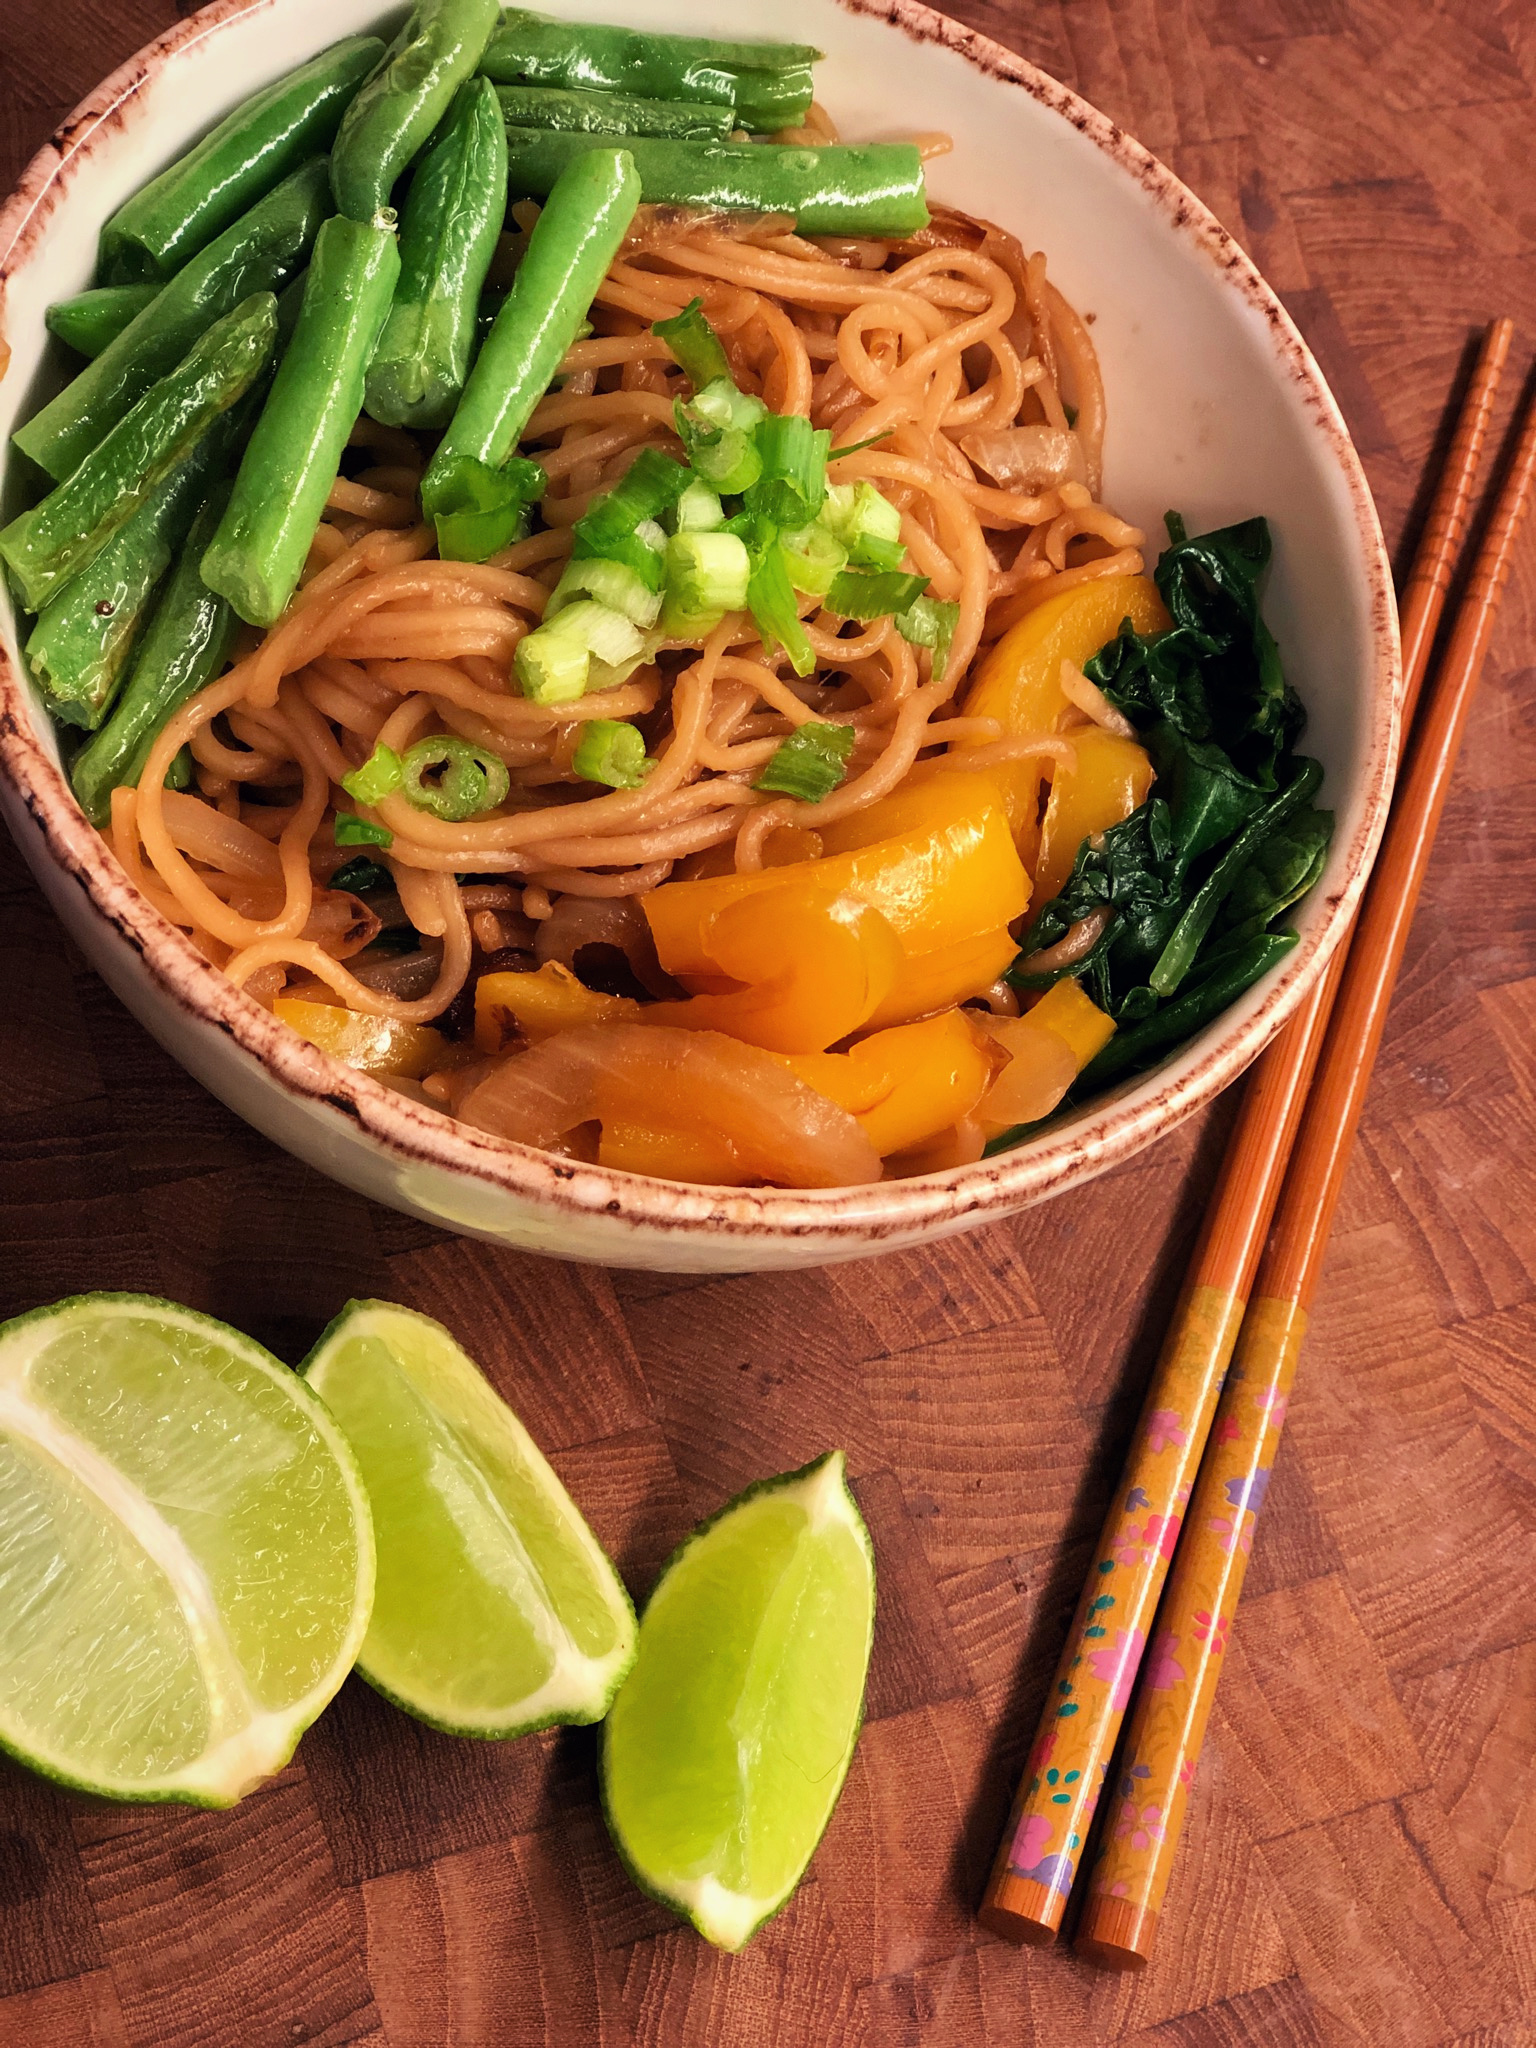 """Also known as 'yasai yakisoba,' this is a healthy and quick dish with stir-fried noodles, vegetables, and a savory sauce,"" says Diana71. ""The recipe can be easily doubled, but this is really best for one person."""